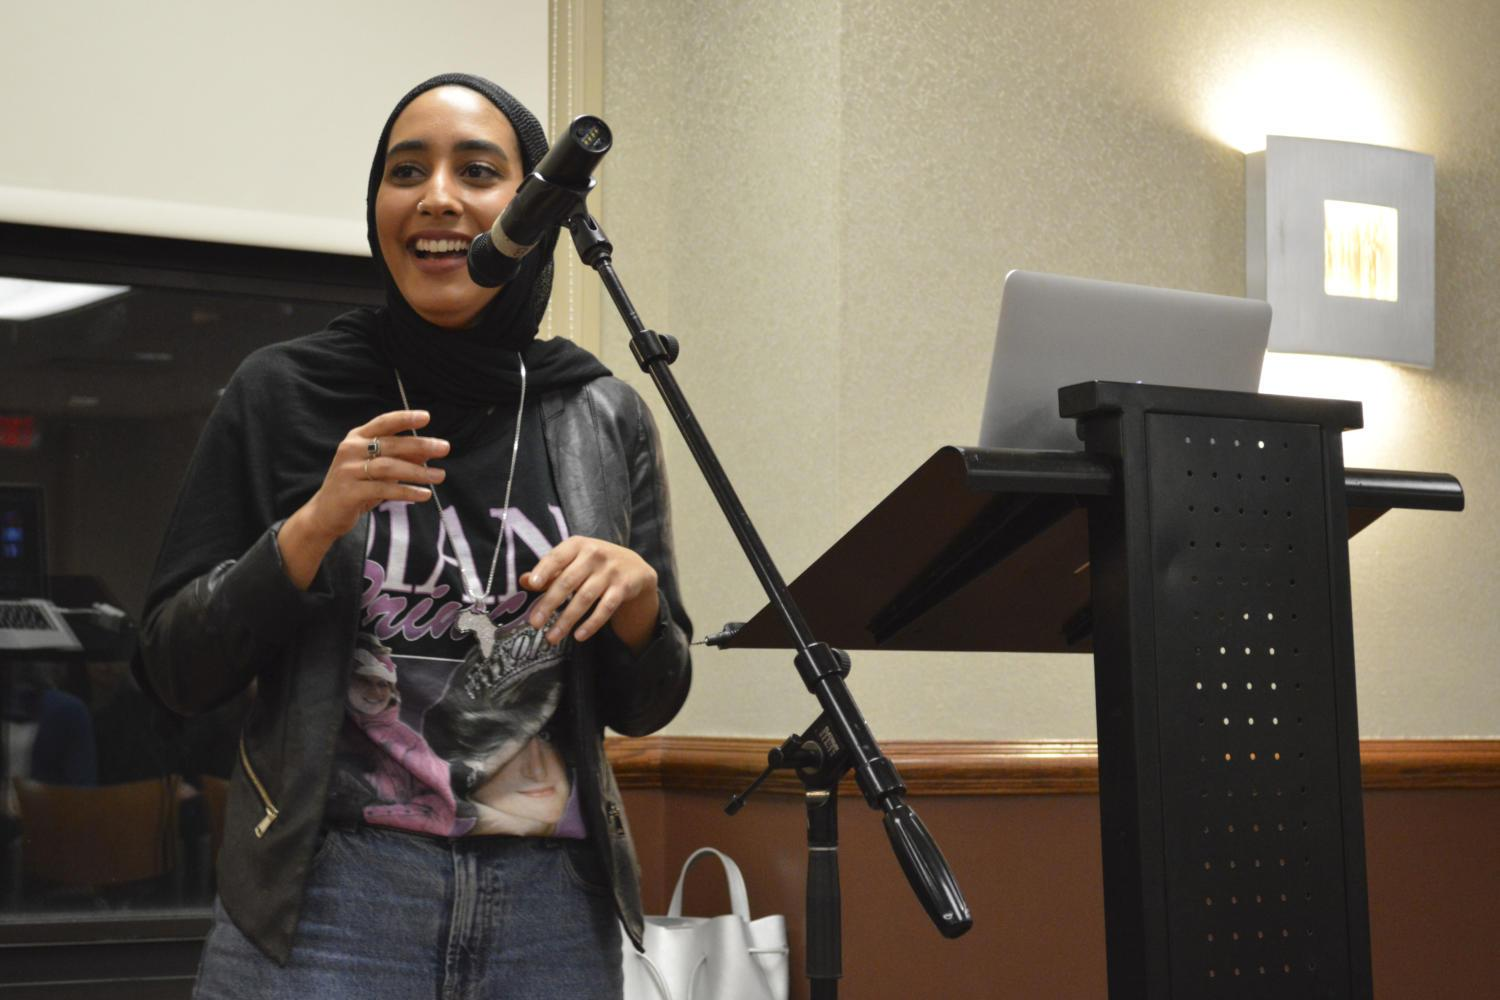 Mariah Idrissi spoke to more than 60 people in the William Pitt Union Saturday about her experience as the first hijab-wearing Muslim model in the world. (Photo by Issi Glatts | Staff Photographer)